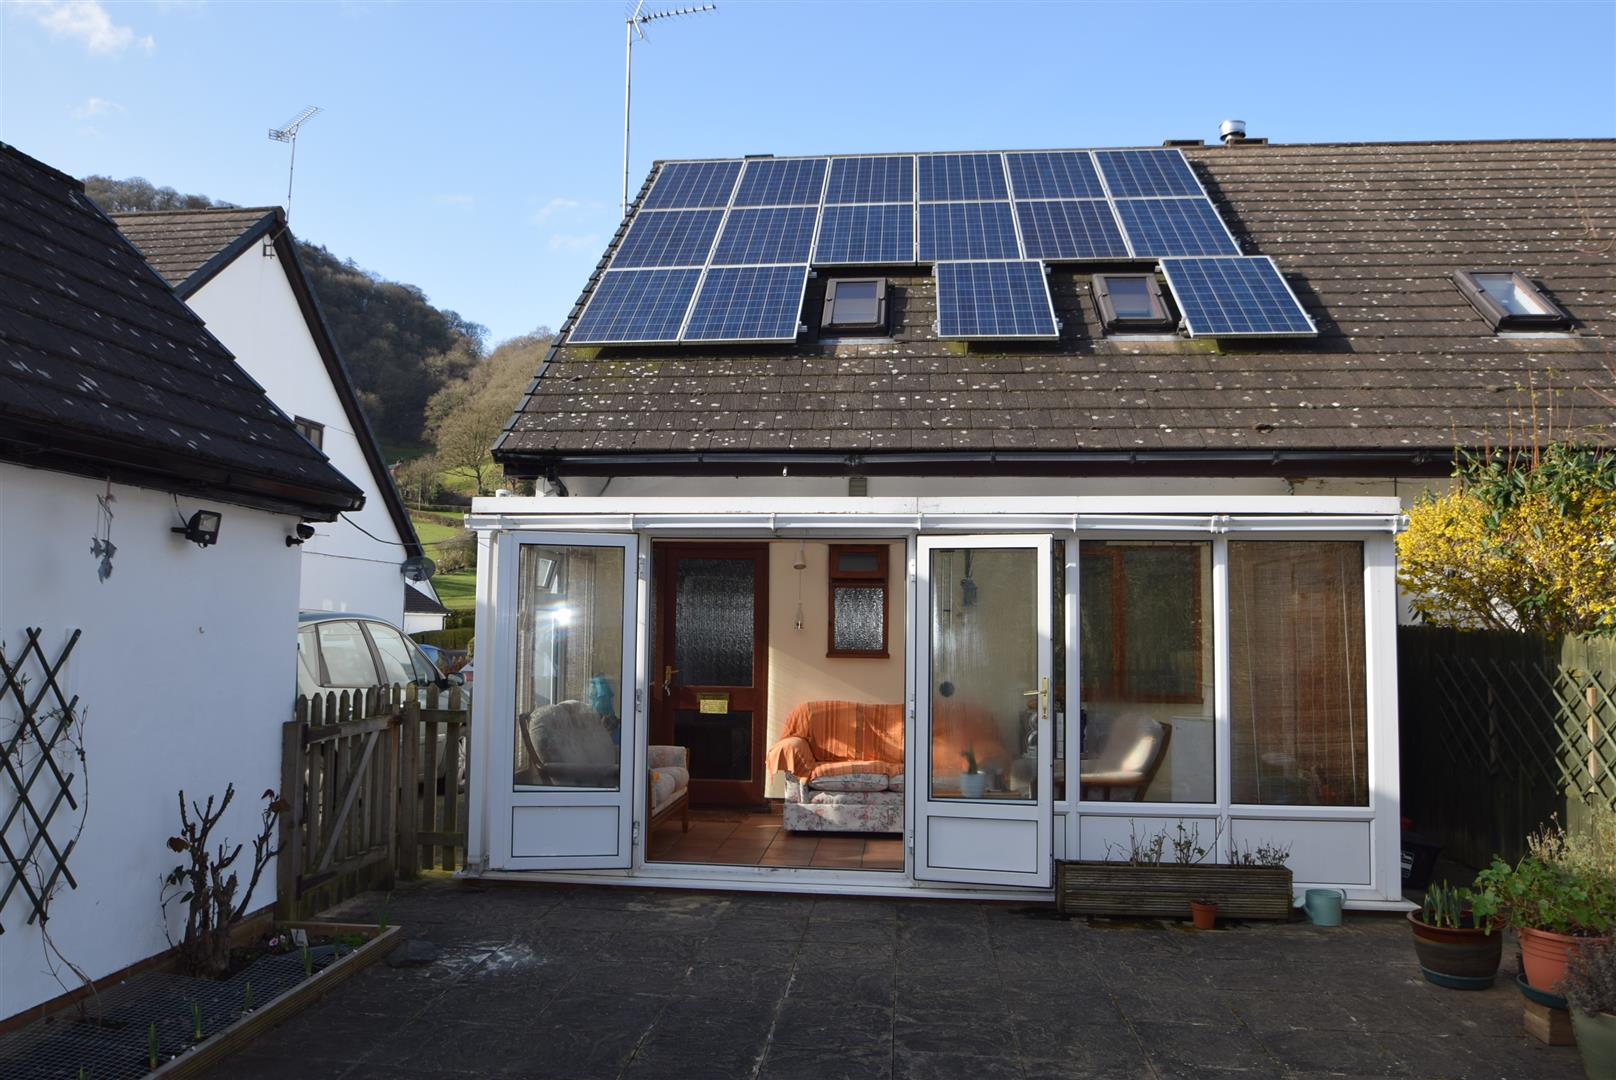 4 Bedroom Detached House For Sale In Welshpool